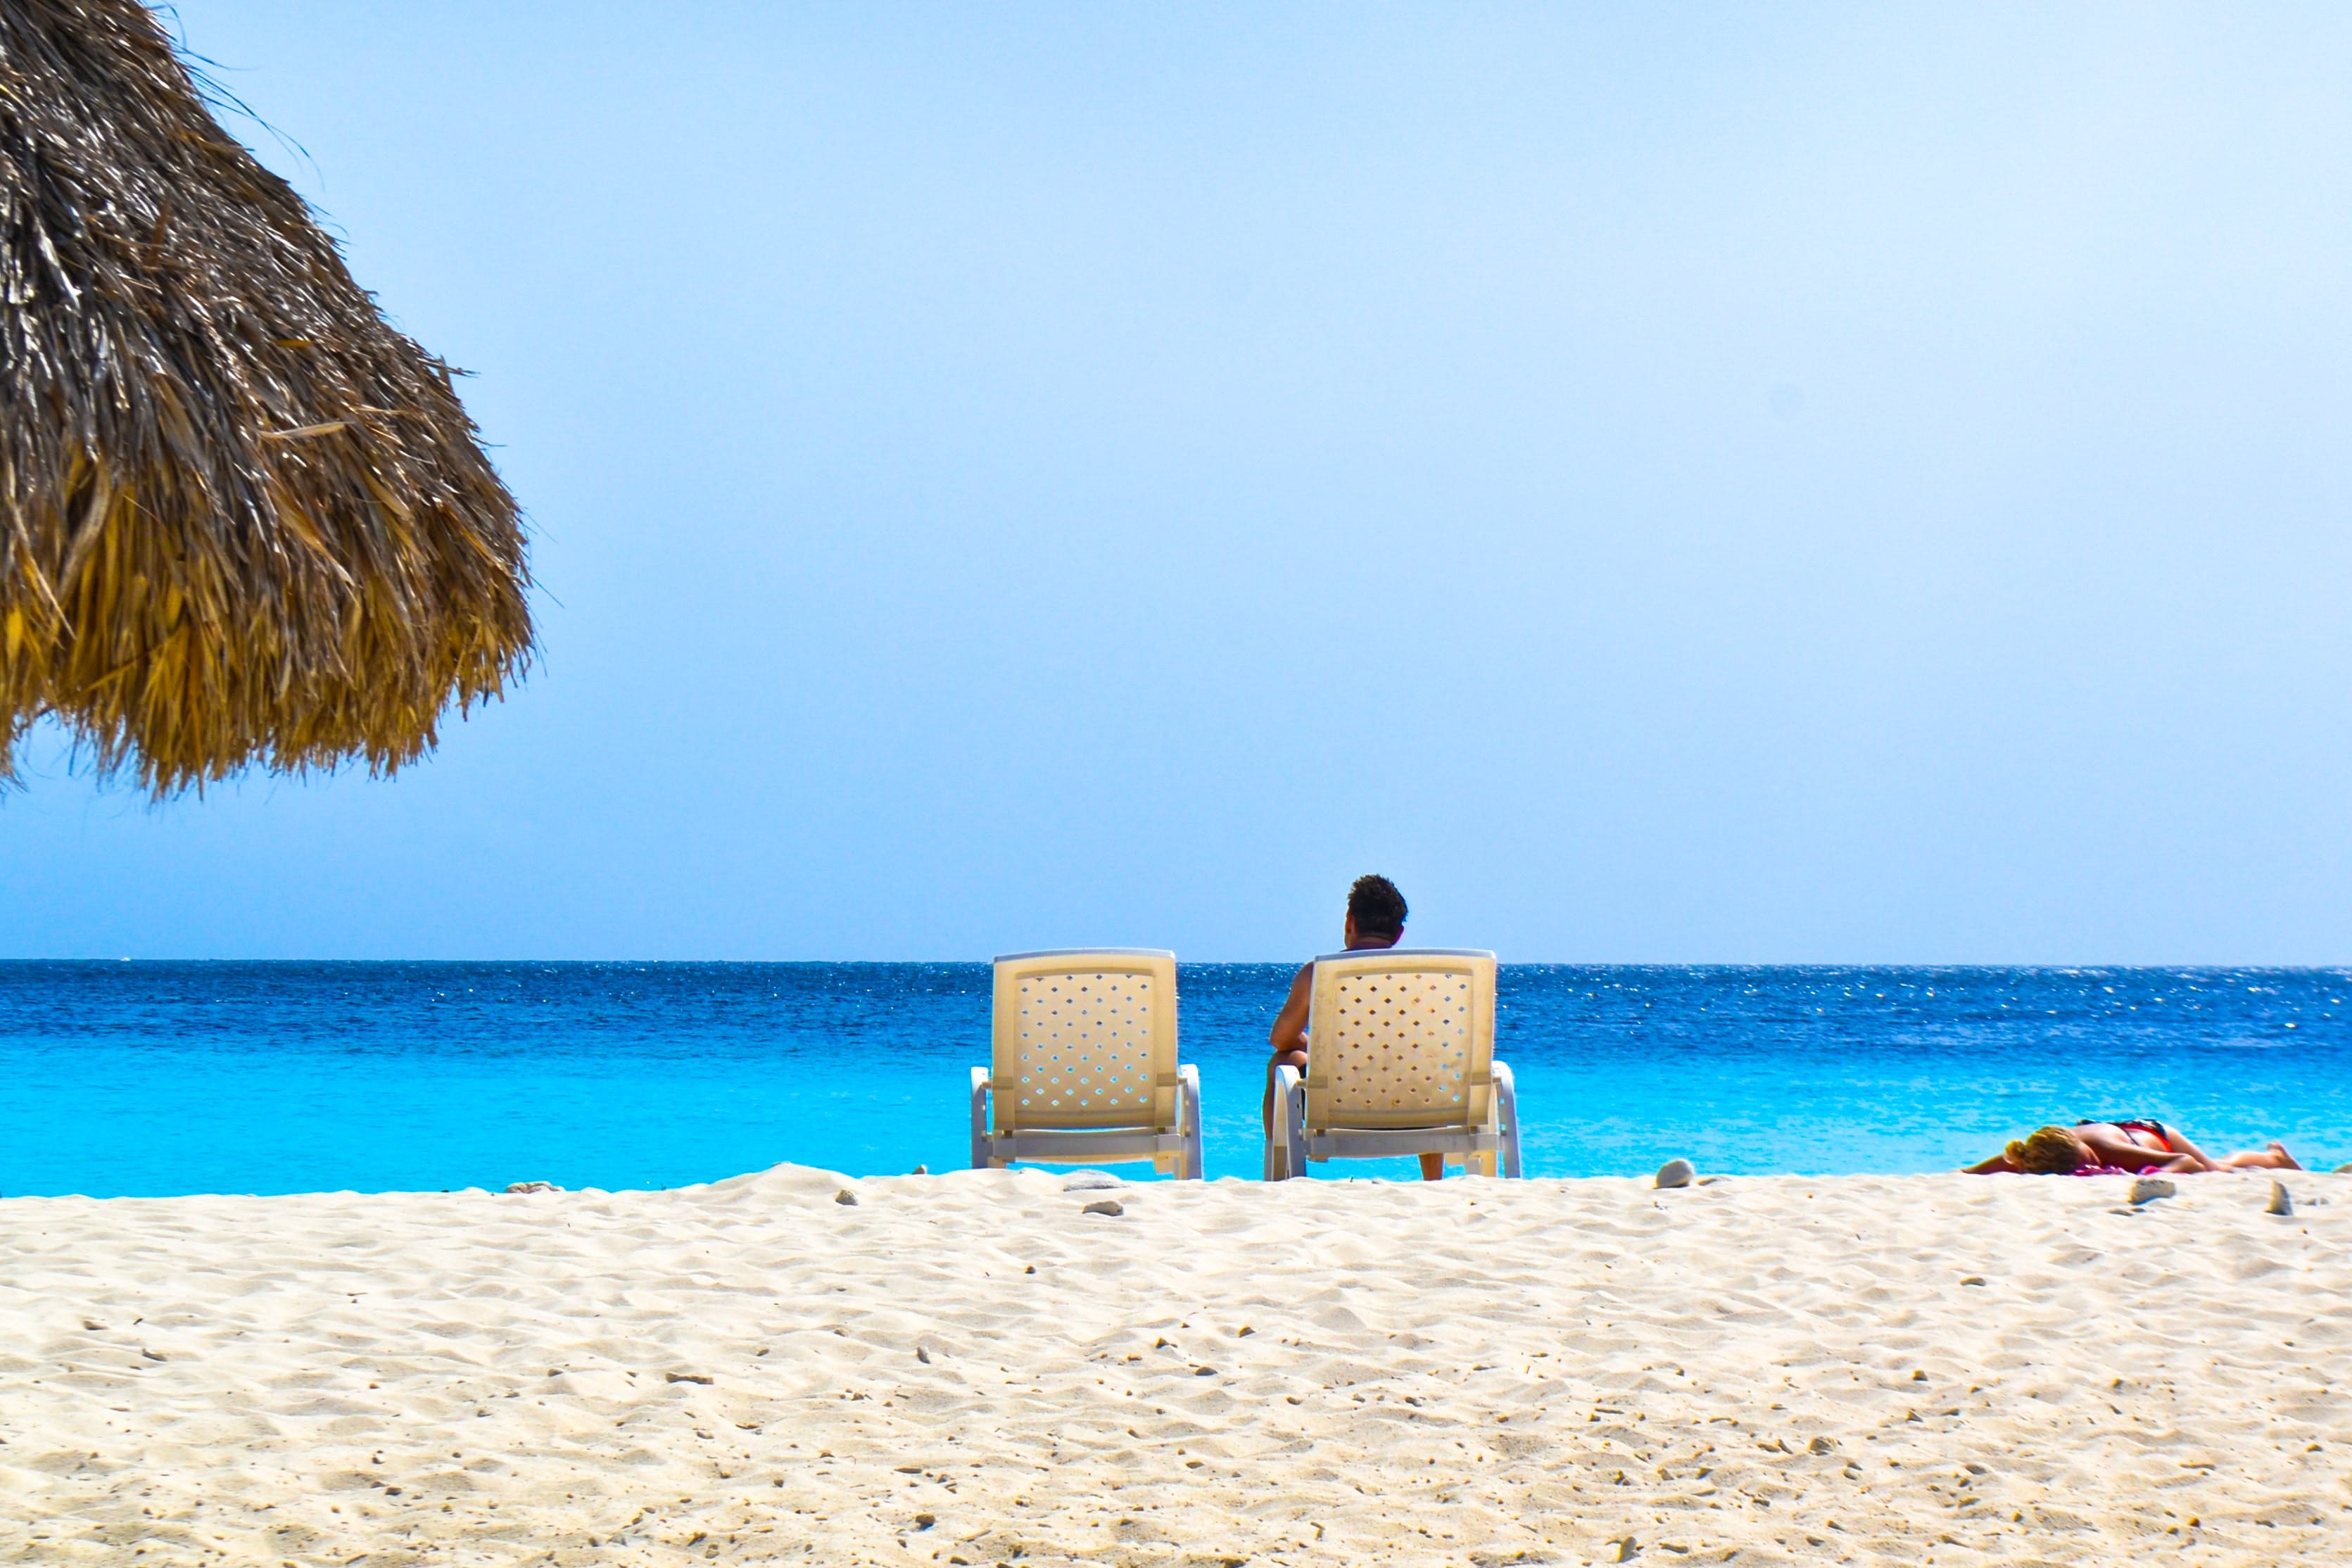 Person Sitting On Lounge Chair At The Beach